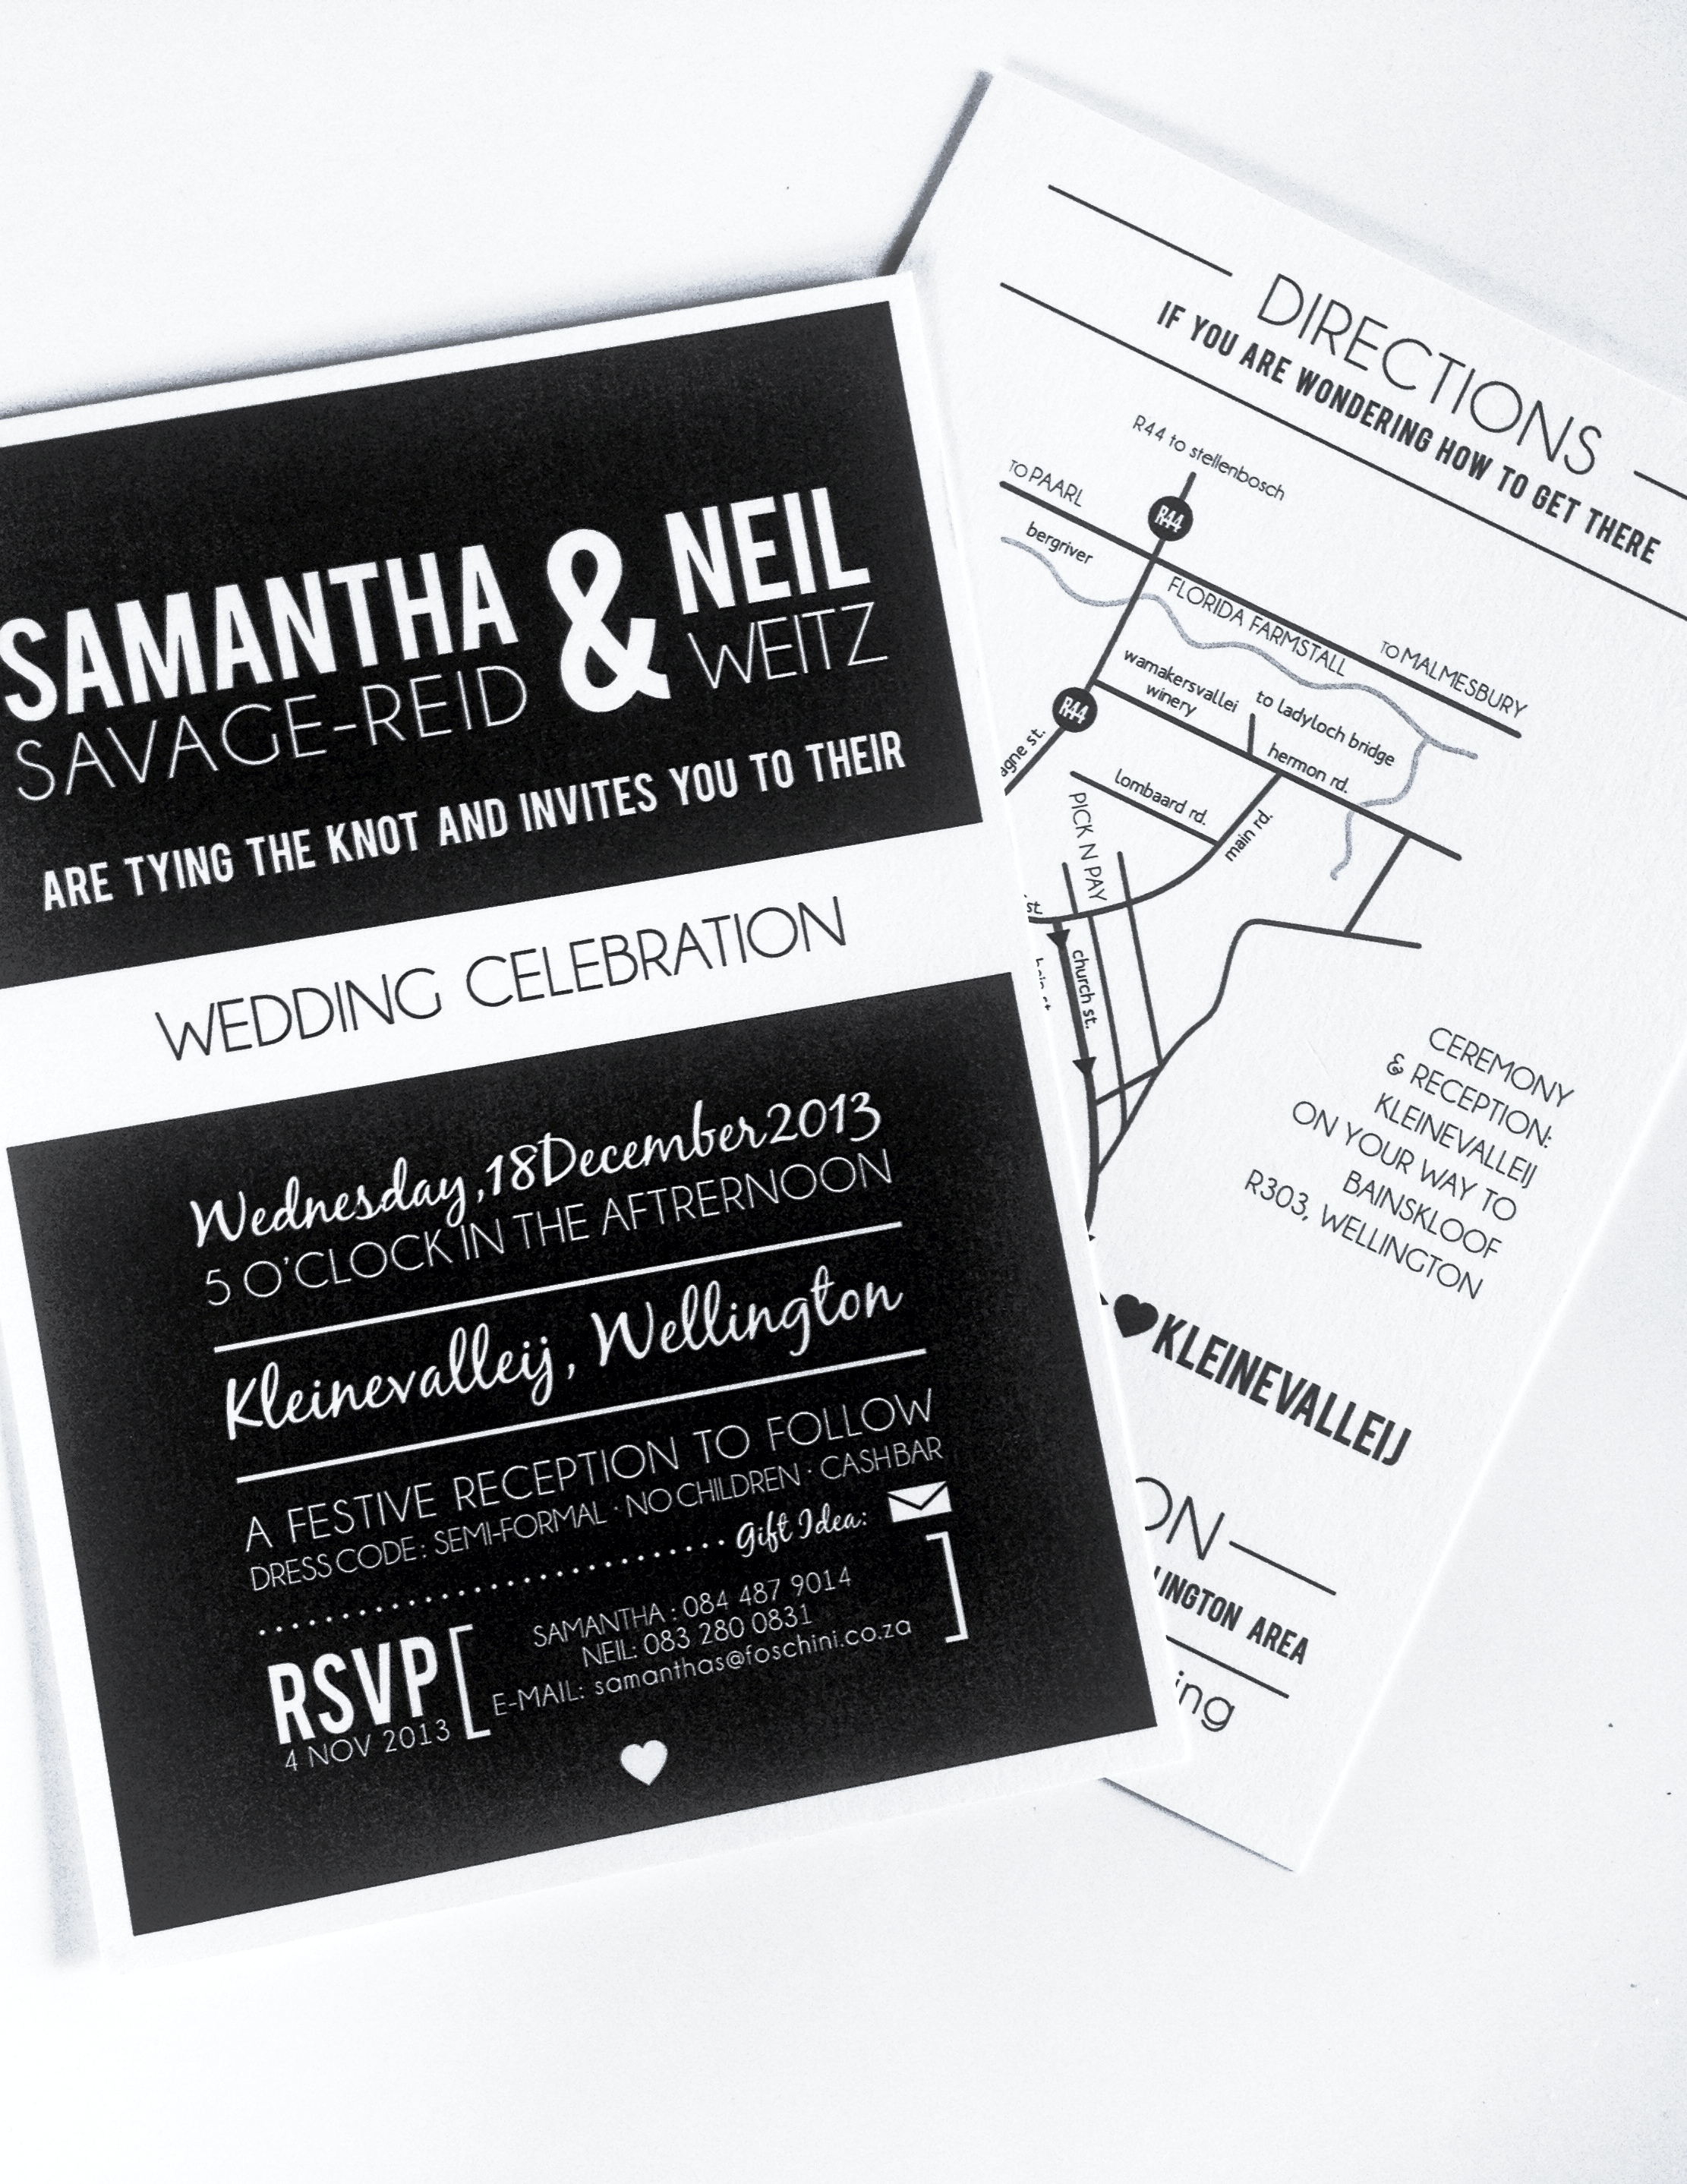 Wedding invitations south africa cape town 28 images letterpress wedding invitations south africa cape town letterpress wedding invite 2 cottoncloud letterpress stopboris Images